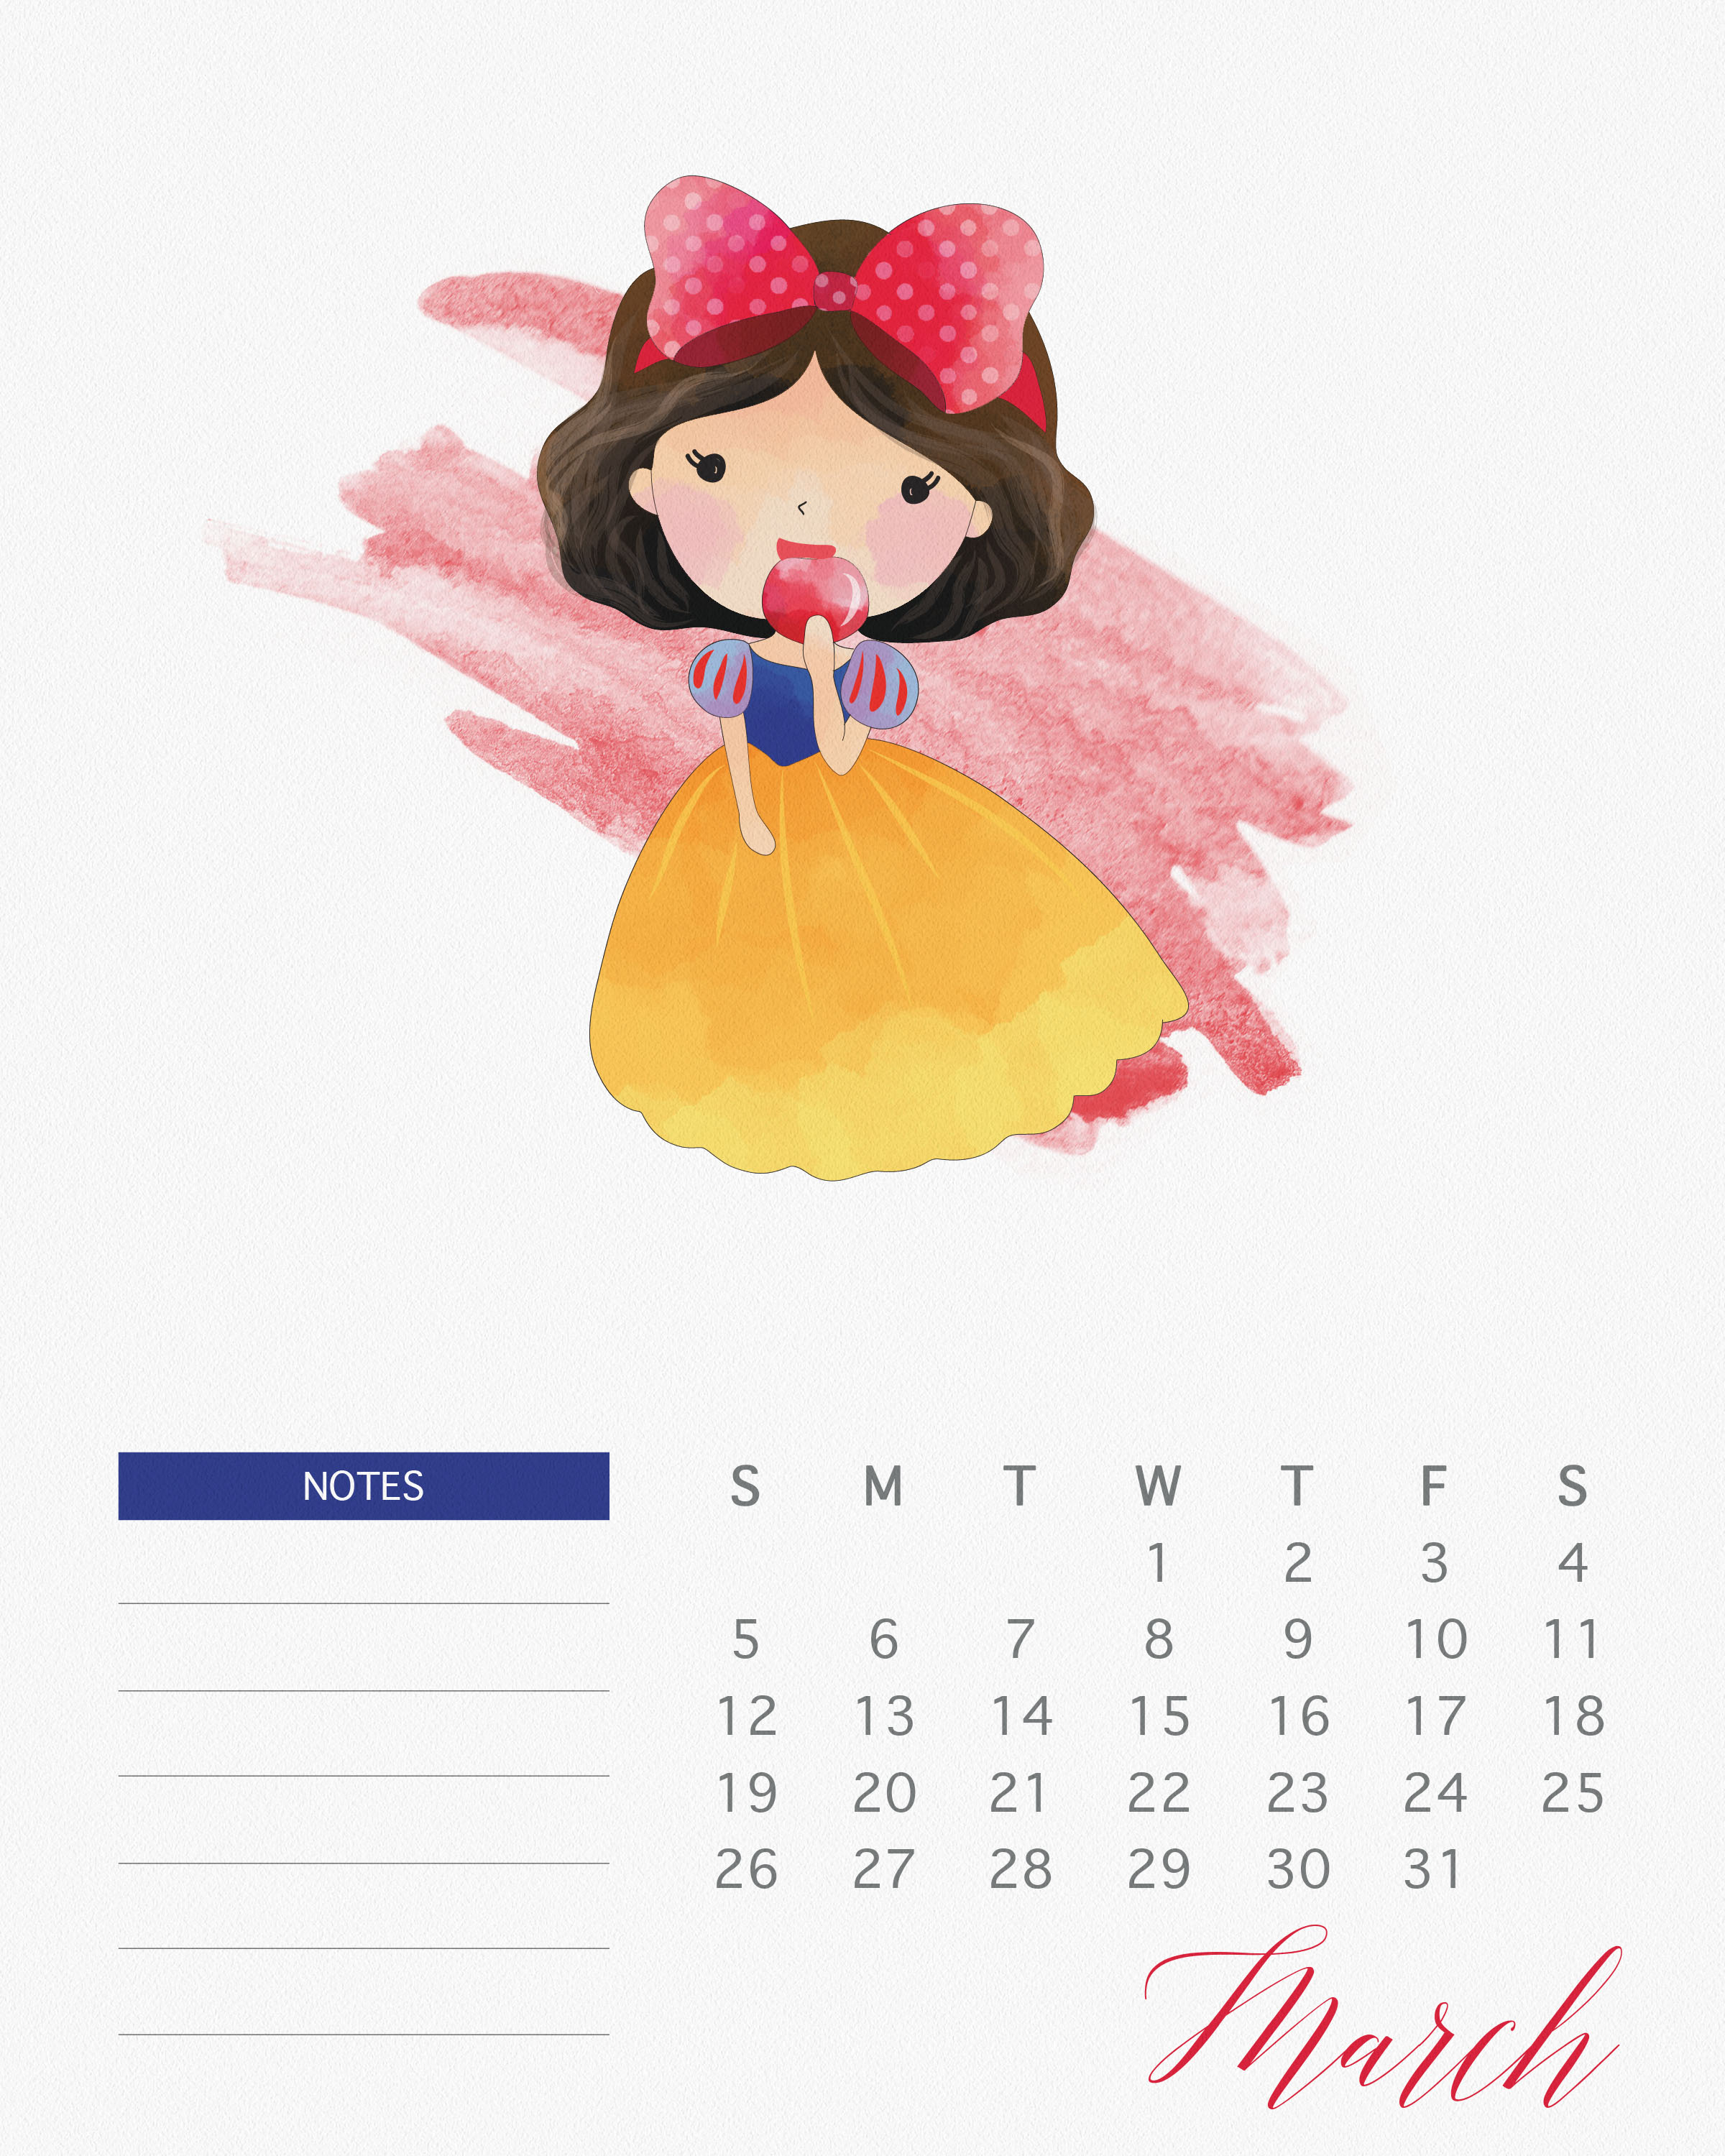 Free Printable 2017 Watercolor Princess Calendar The